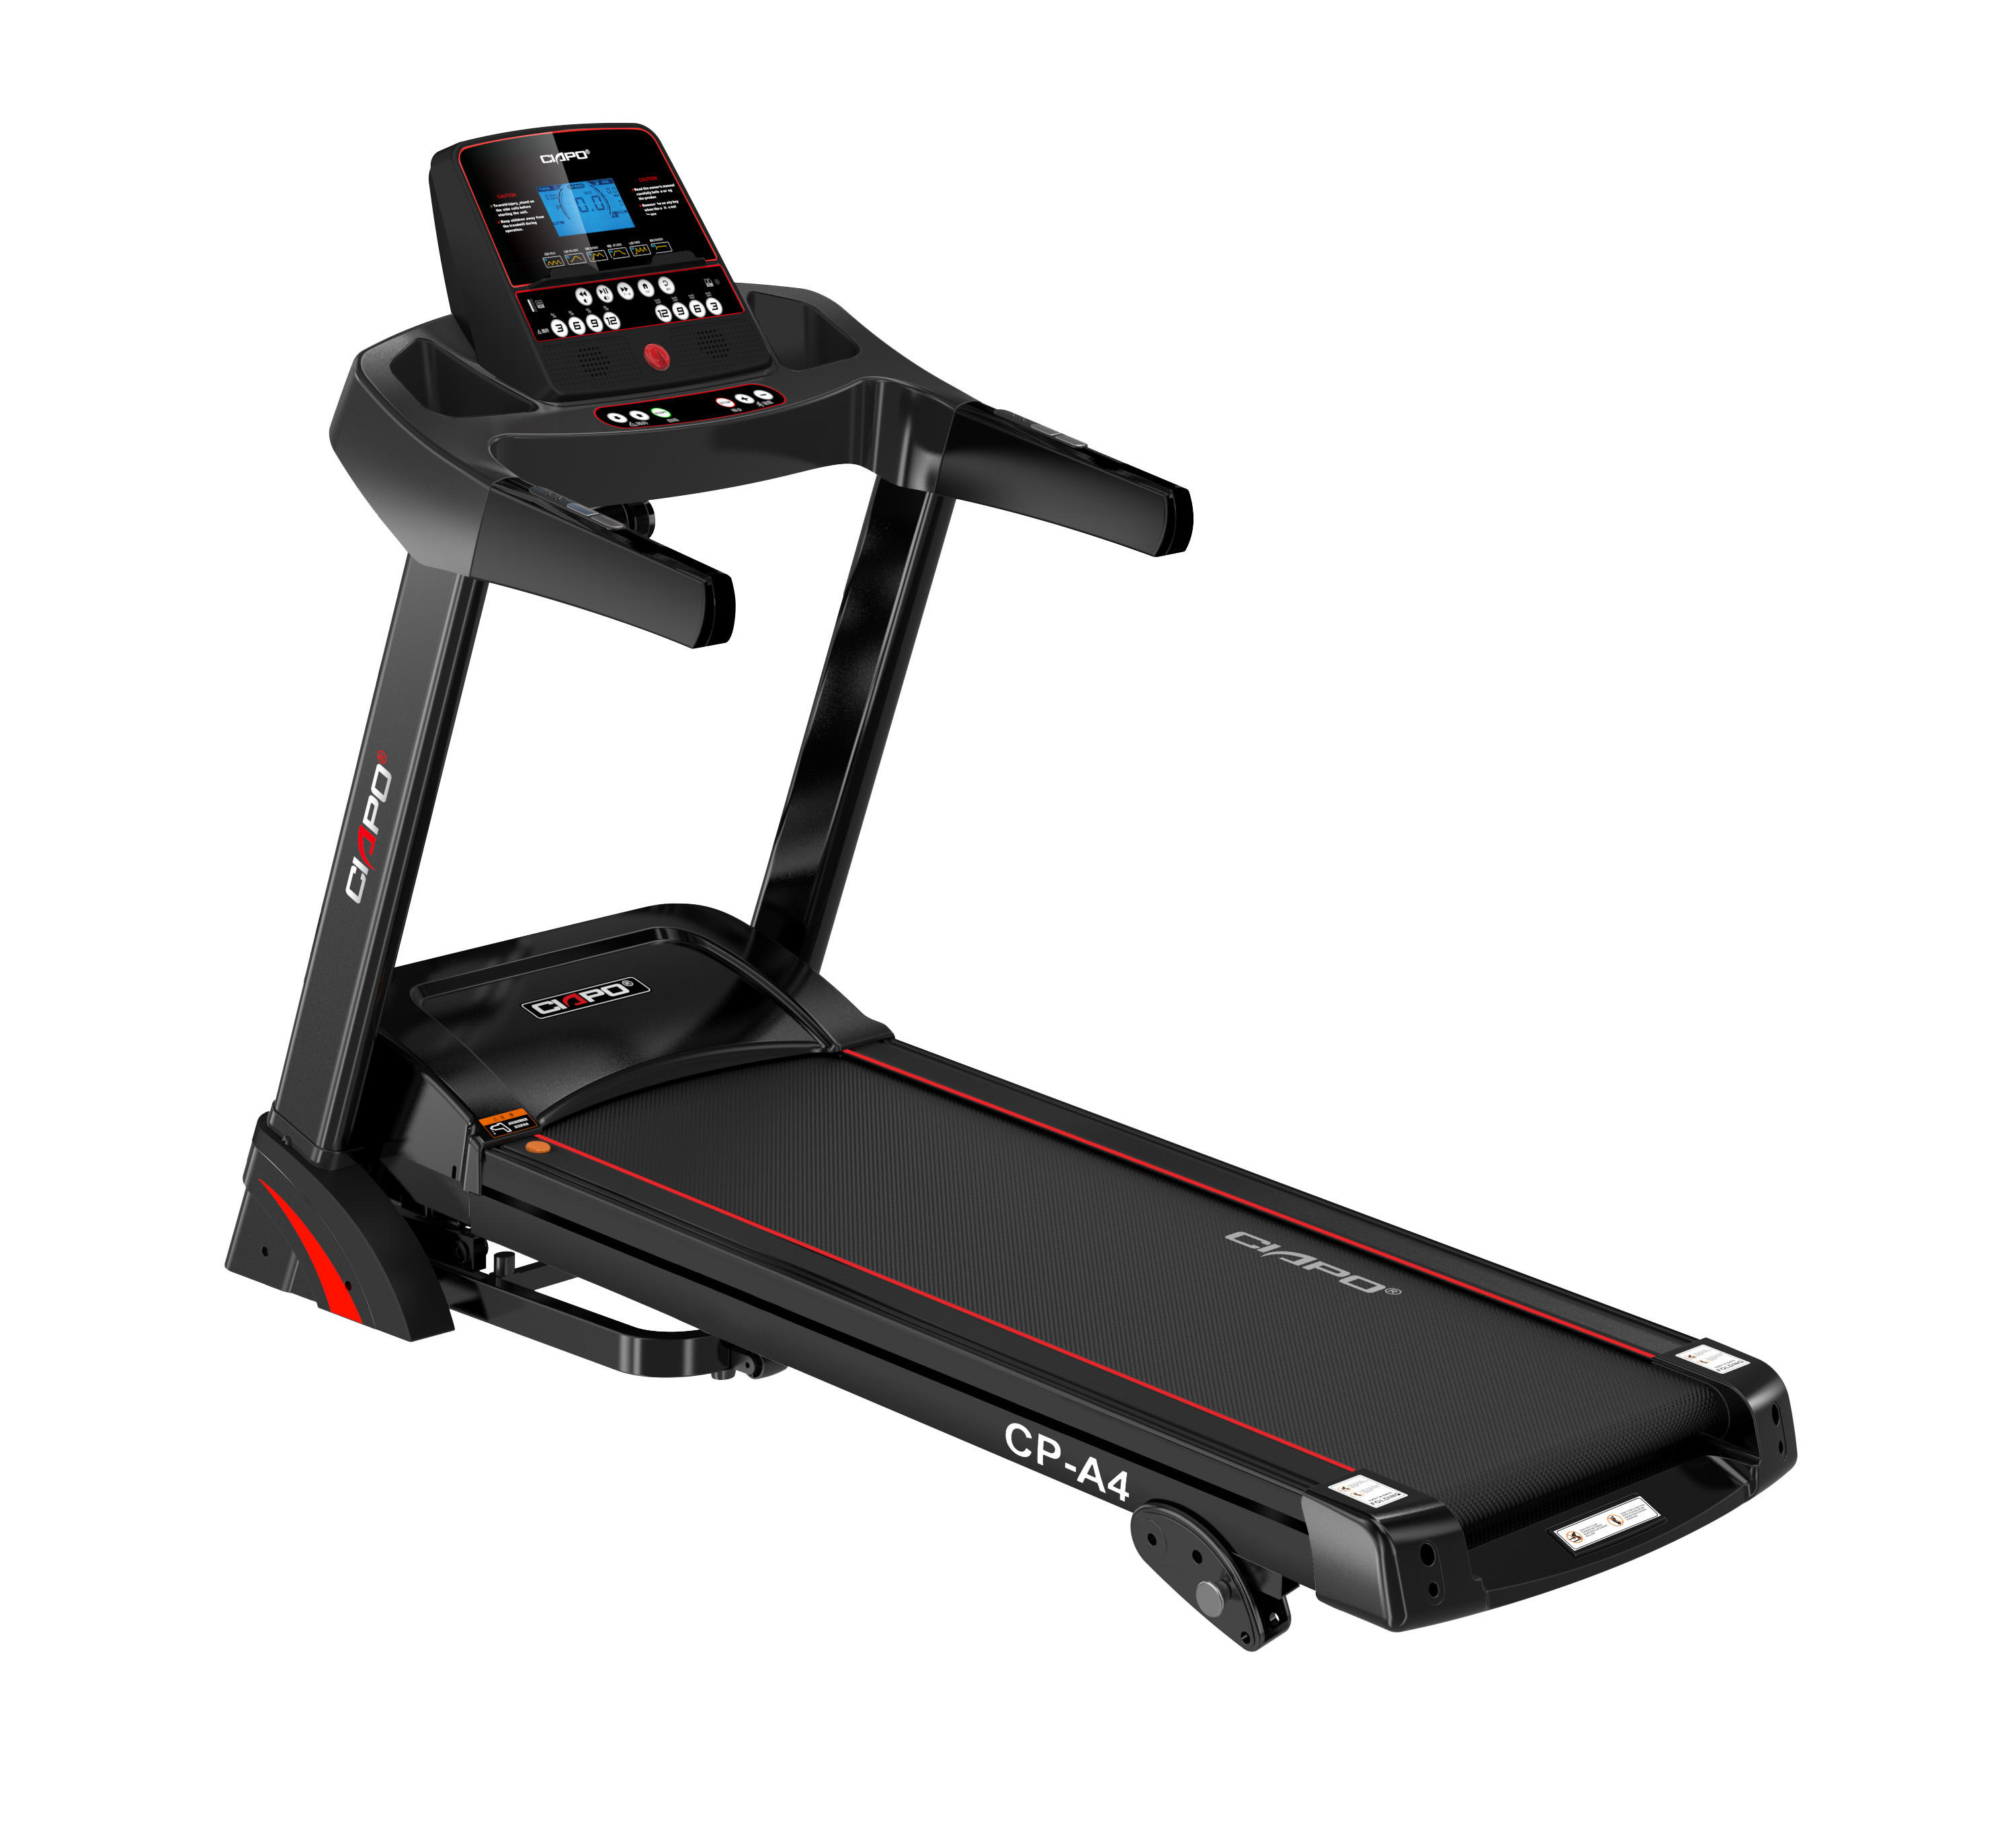 Ciapo best seller AC motor treadmill CP-A4 blue screen with CB, EMC, CE certification for professional body fitness exercise